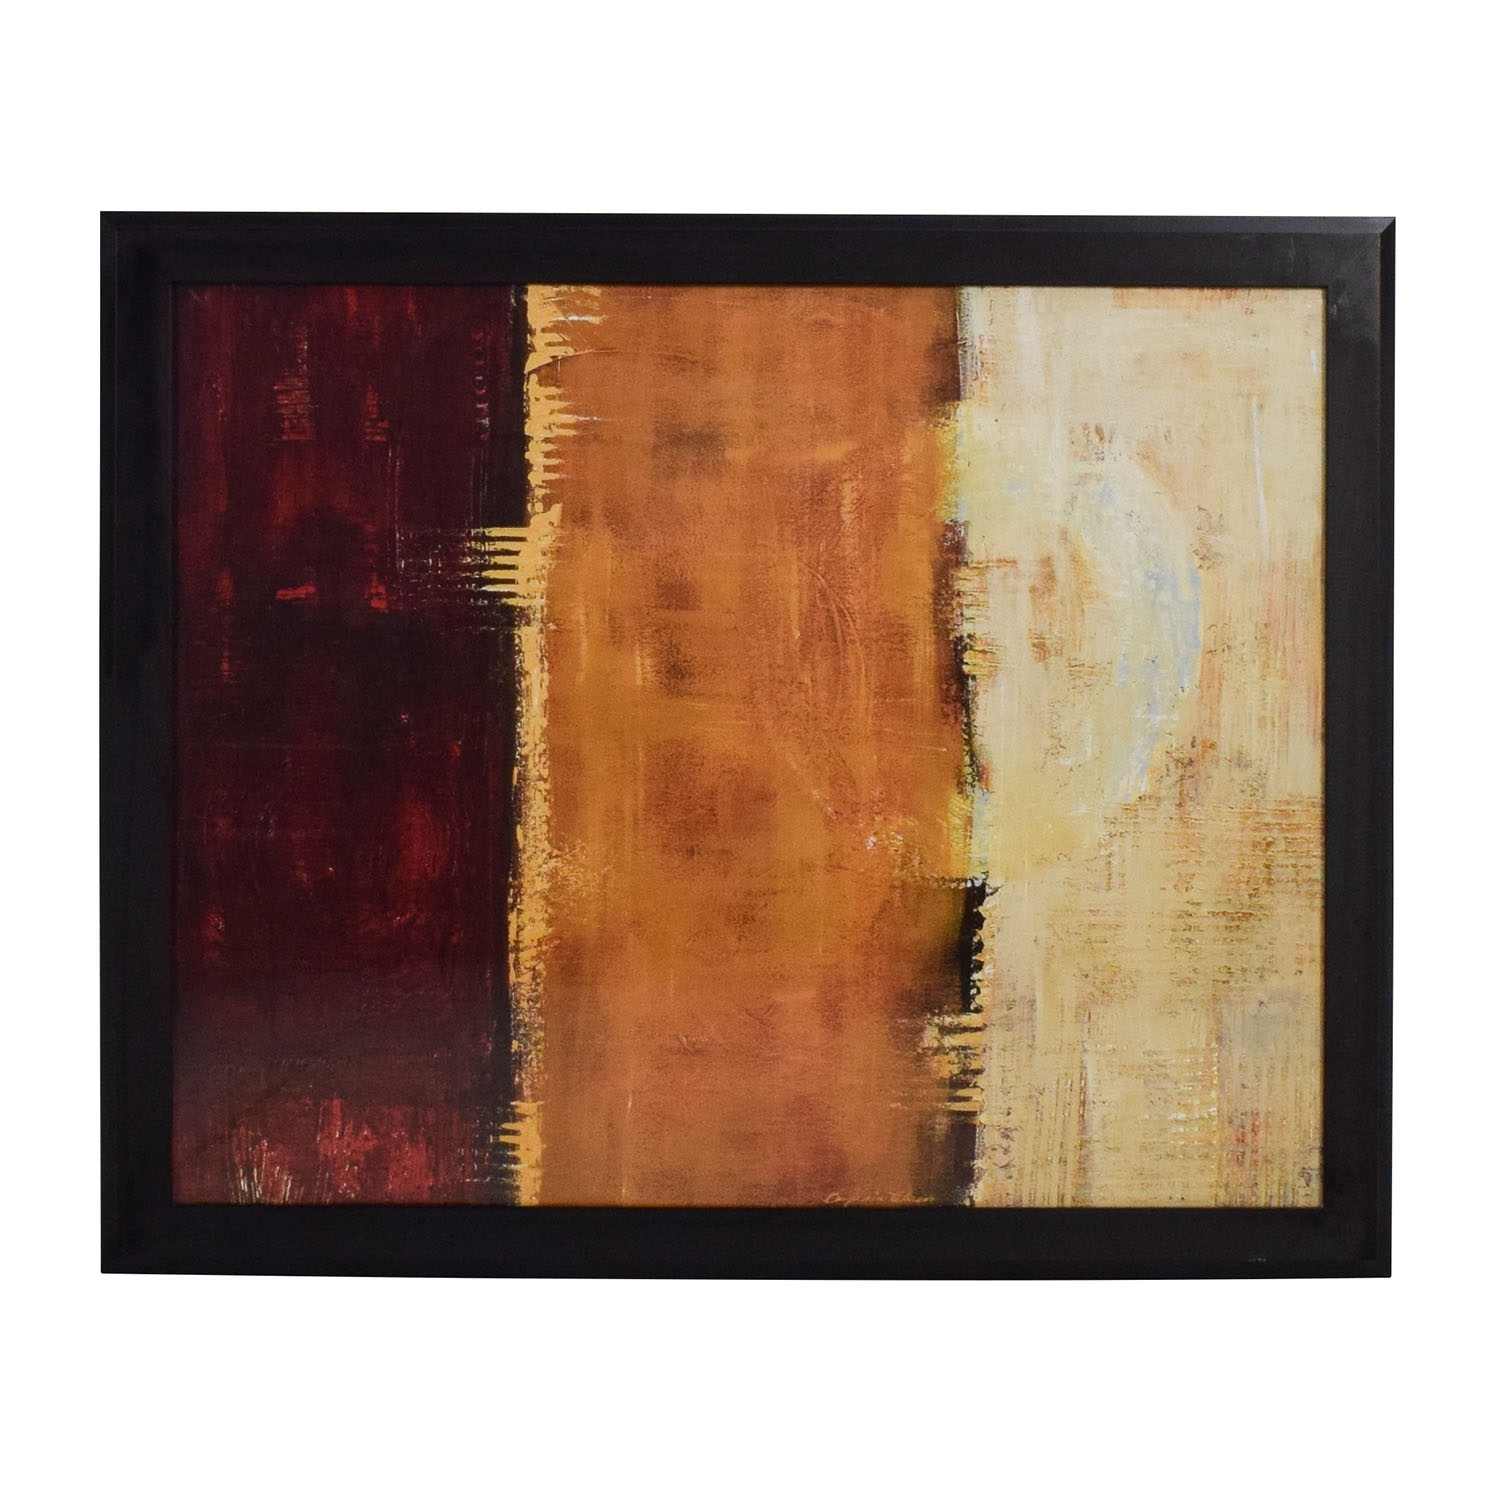 88% Off   Z Gallerie Z Gallerie Framed Canvas Red Orange Yellow Wall Within Z Gallerie Wall Art (Photo 9 of 20)